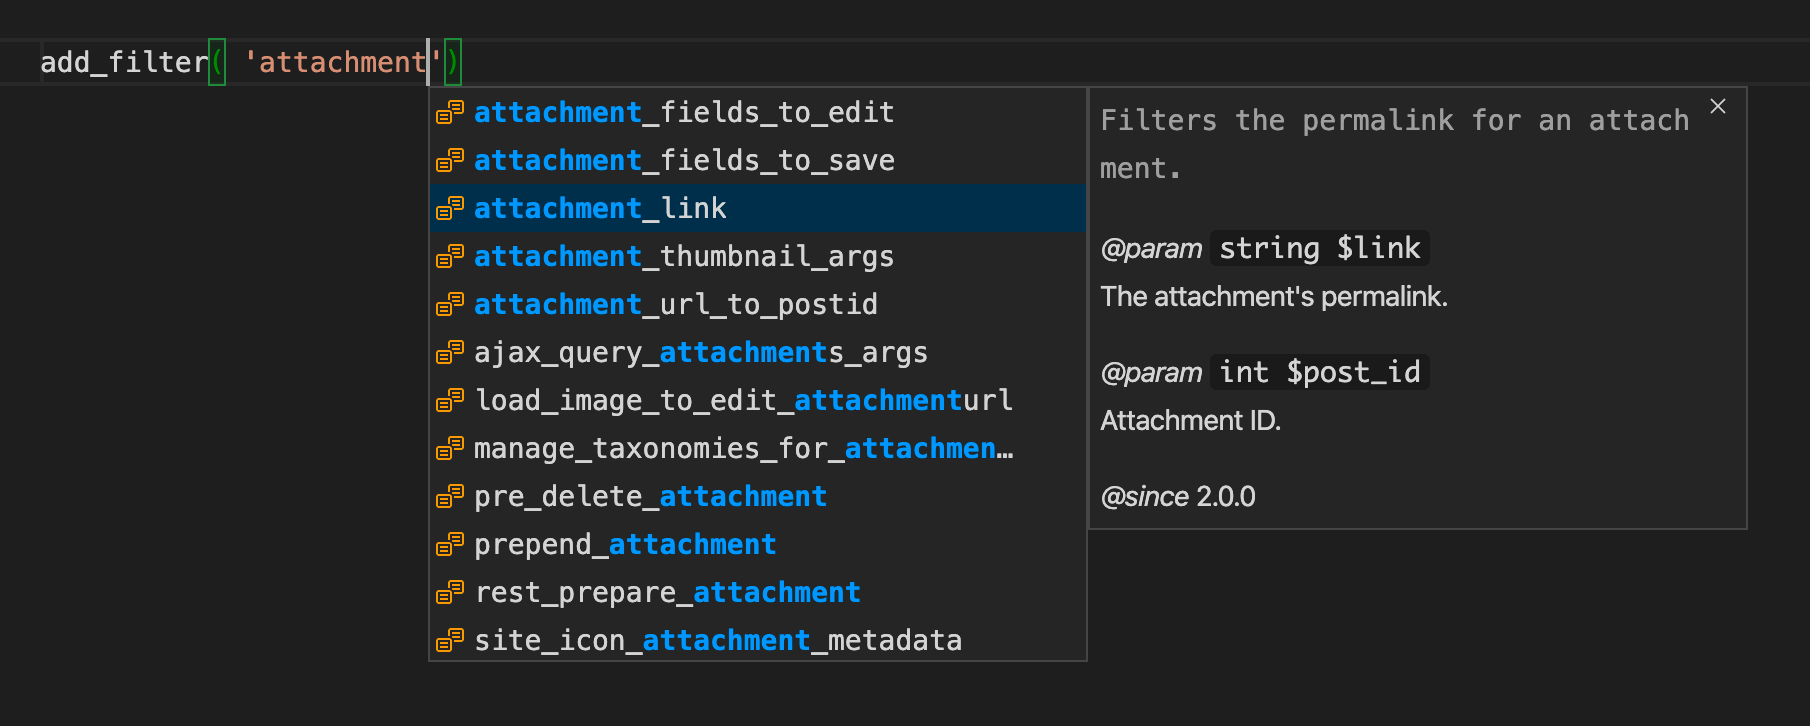 Screenshot of VS Code showing an autocomplete list for the first parameter of the add_filter function